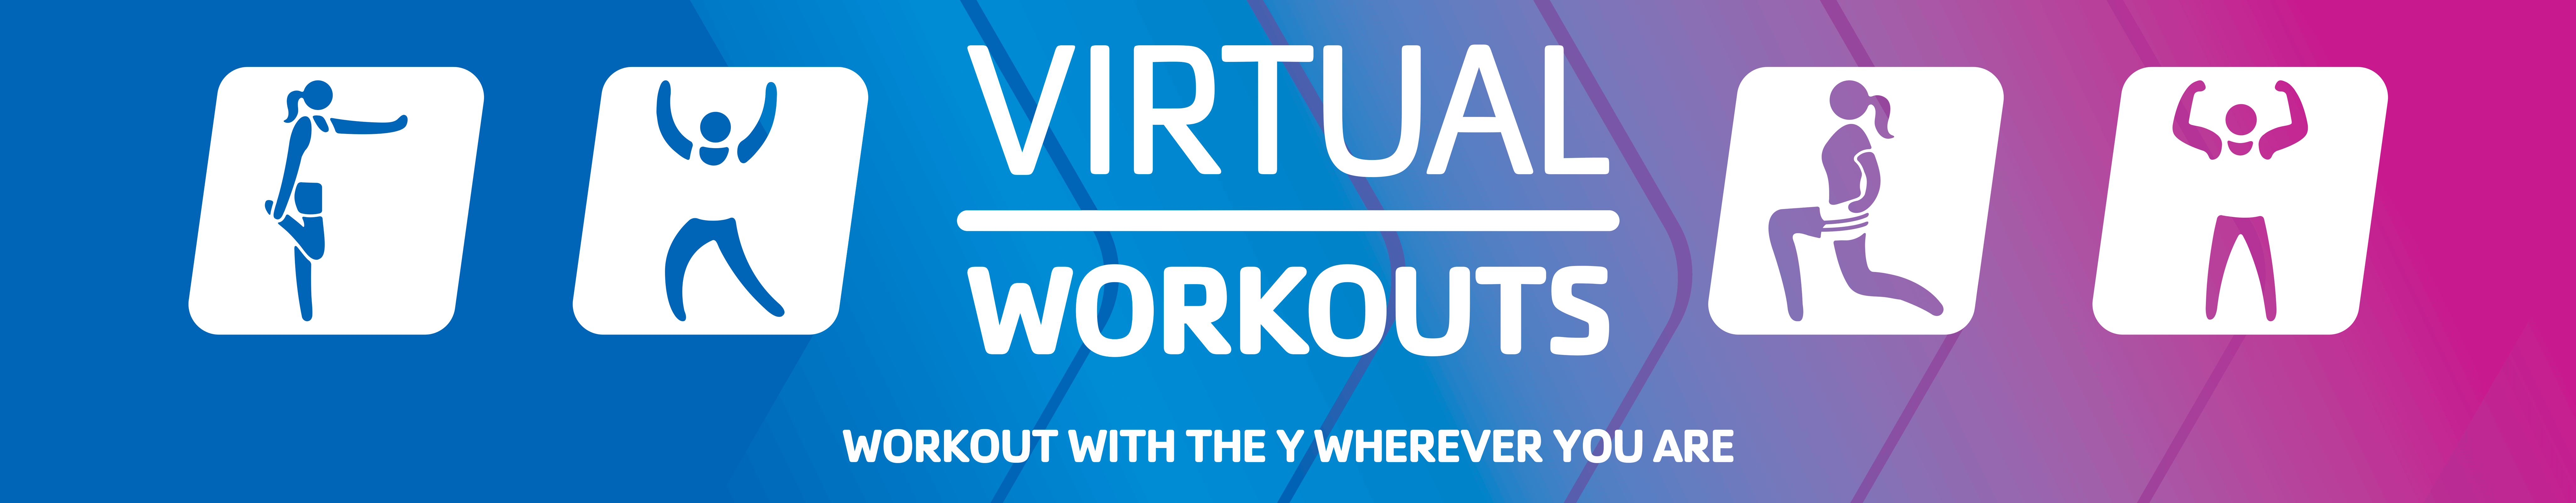 Virtual Workouts